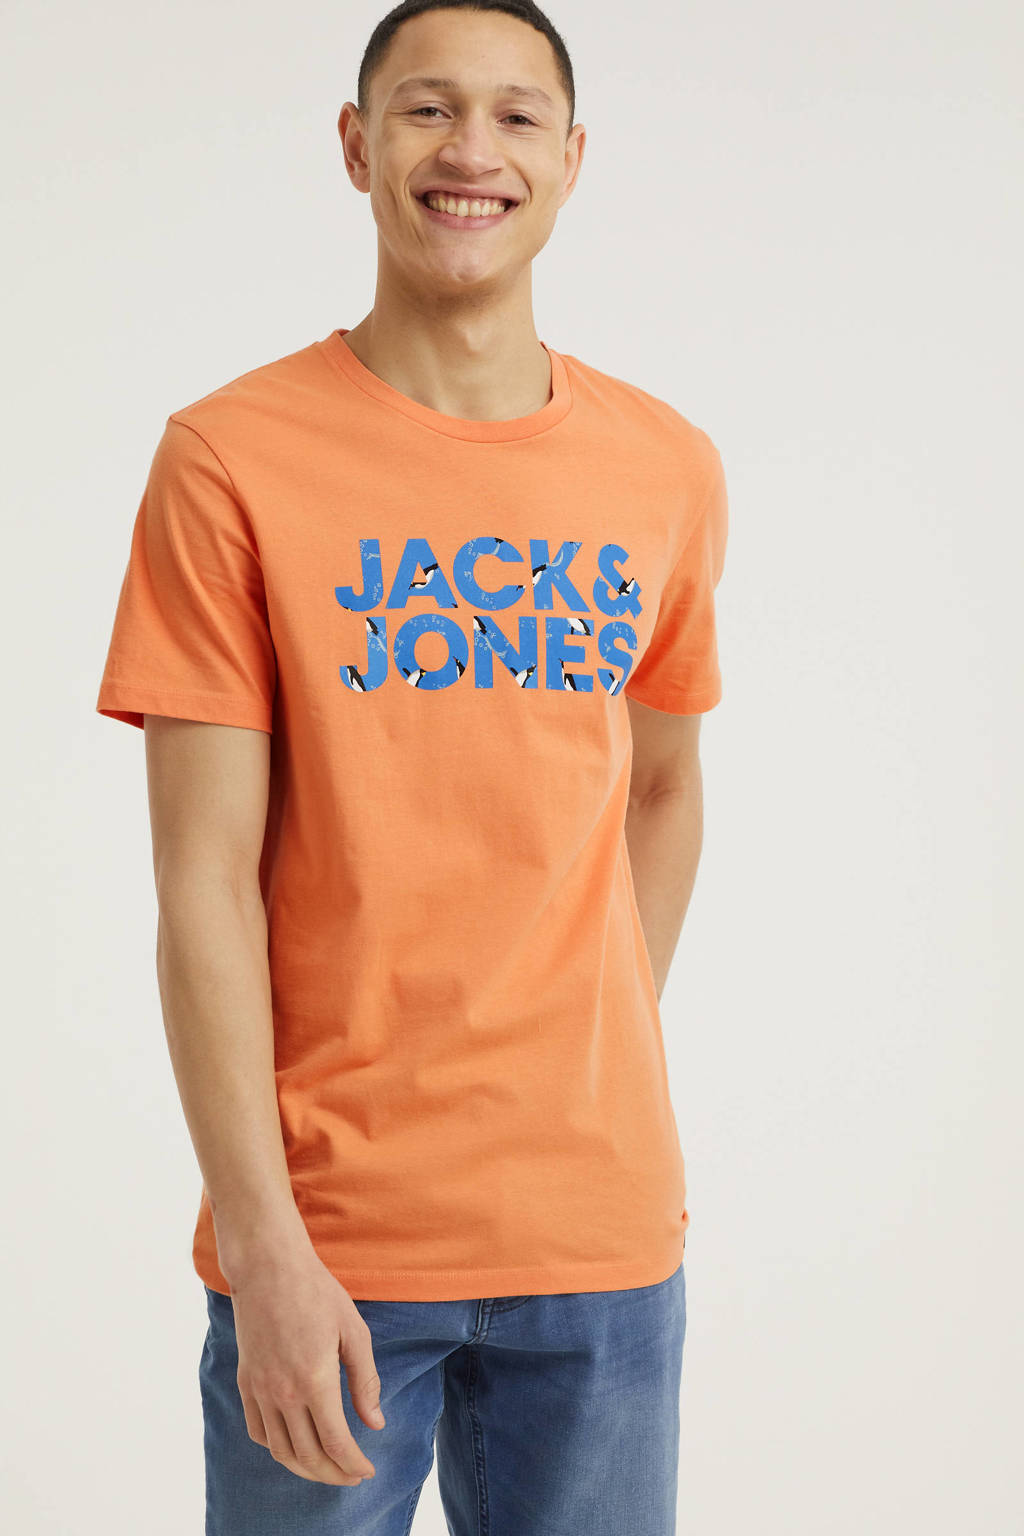 JACK & JONES ORIGINALS T-shirt Swims met logo oranje, Oranje